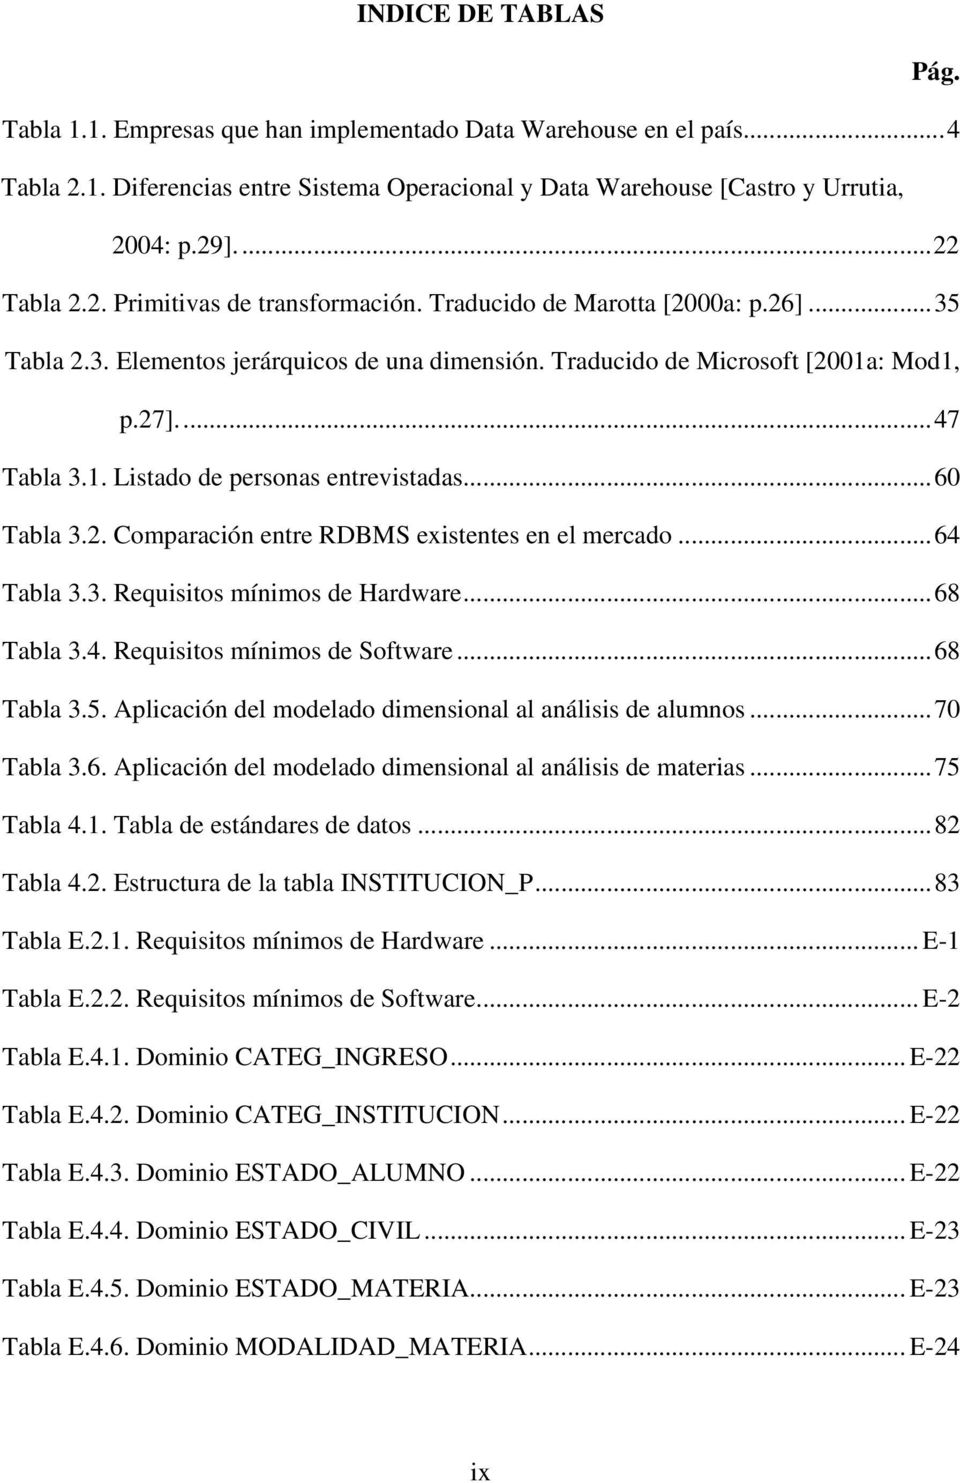 : Mod1, p.27]...47 Tabla 3.1. Listado de personas entrevistadas...60 Tabla 3.2. Comparación entre RDBMS existentes en el mercado...64 Tabla 3.3. Requisitos mínimos de Hardware...68 Tabla 3.4. Requisitos mínimos de Software.